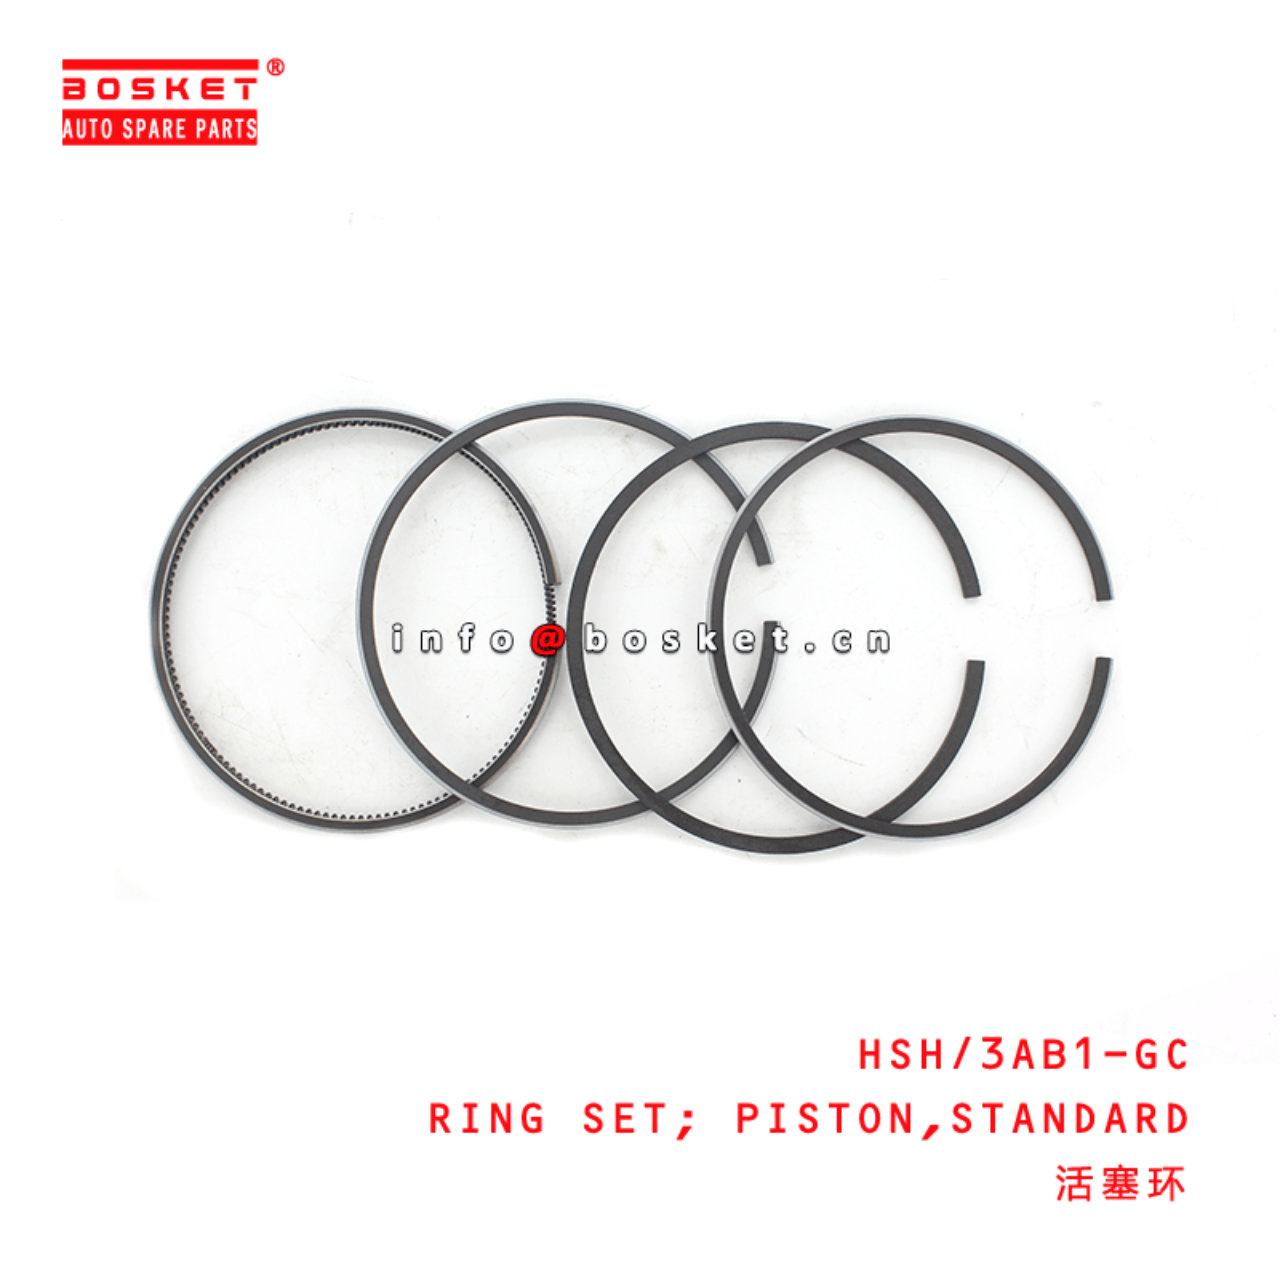 HSH/3AB1-GC Standard Piston Ring Set Suitable for ISUZU 3AB1